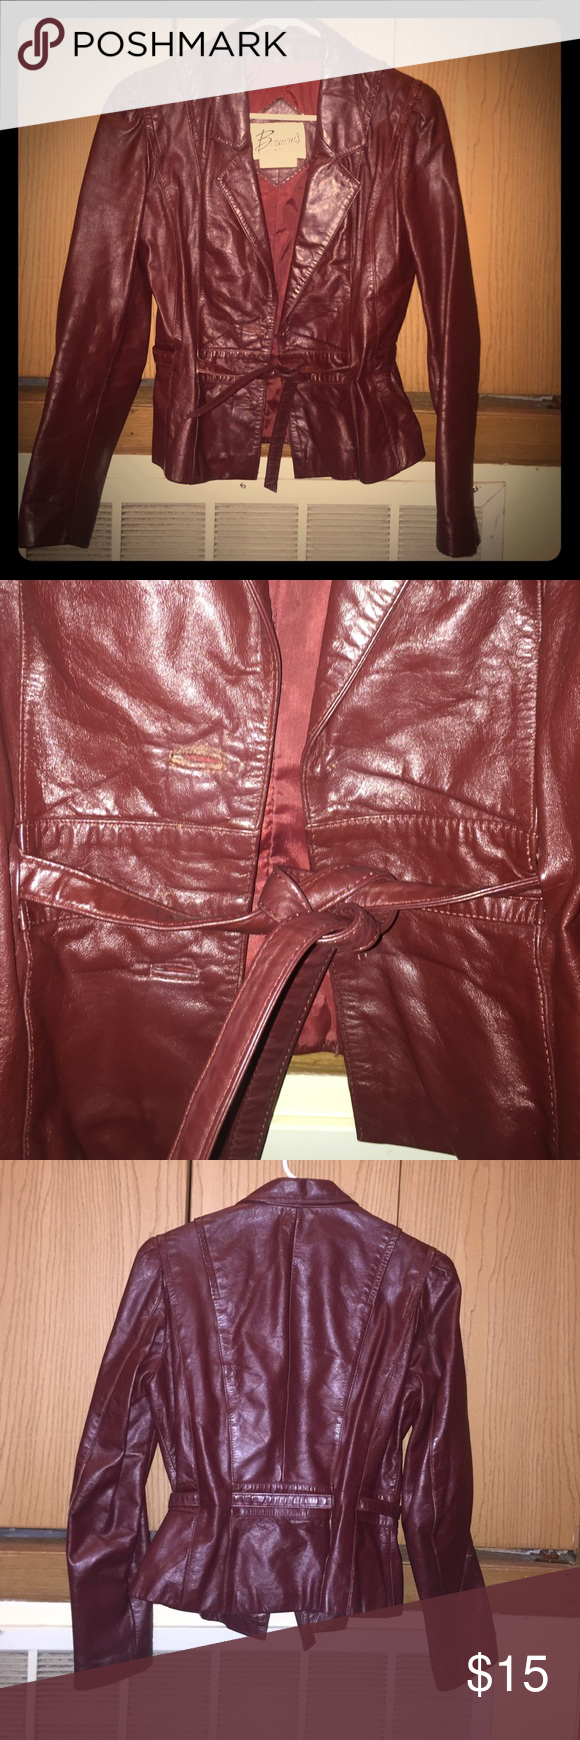 "Short burgundy leather blazer Short and sweet vintage burgundy leather blazer. Belt tie but 2 front buttons are missing (price reflects); no damage to leather. Bust 34"", shoulder 17.5"", sleeve 21.5"", length 21.5"". Super cute! Berman's Jackets & Coats Blazers"